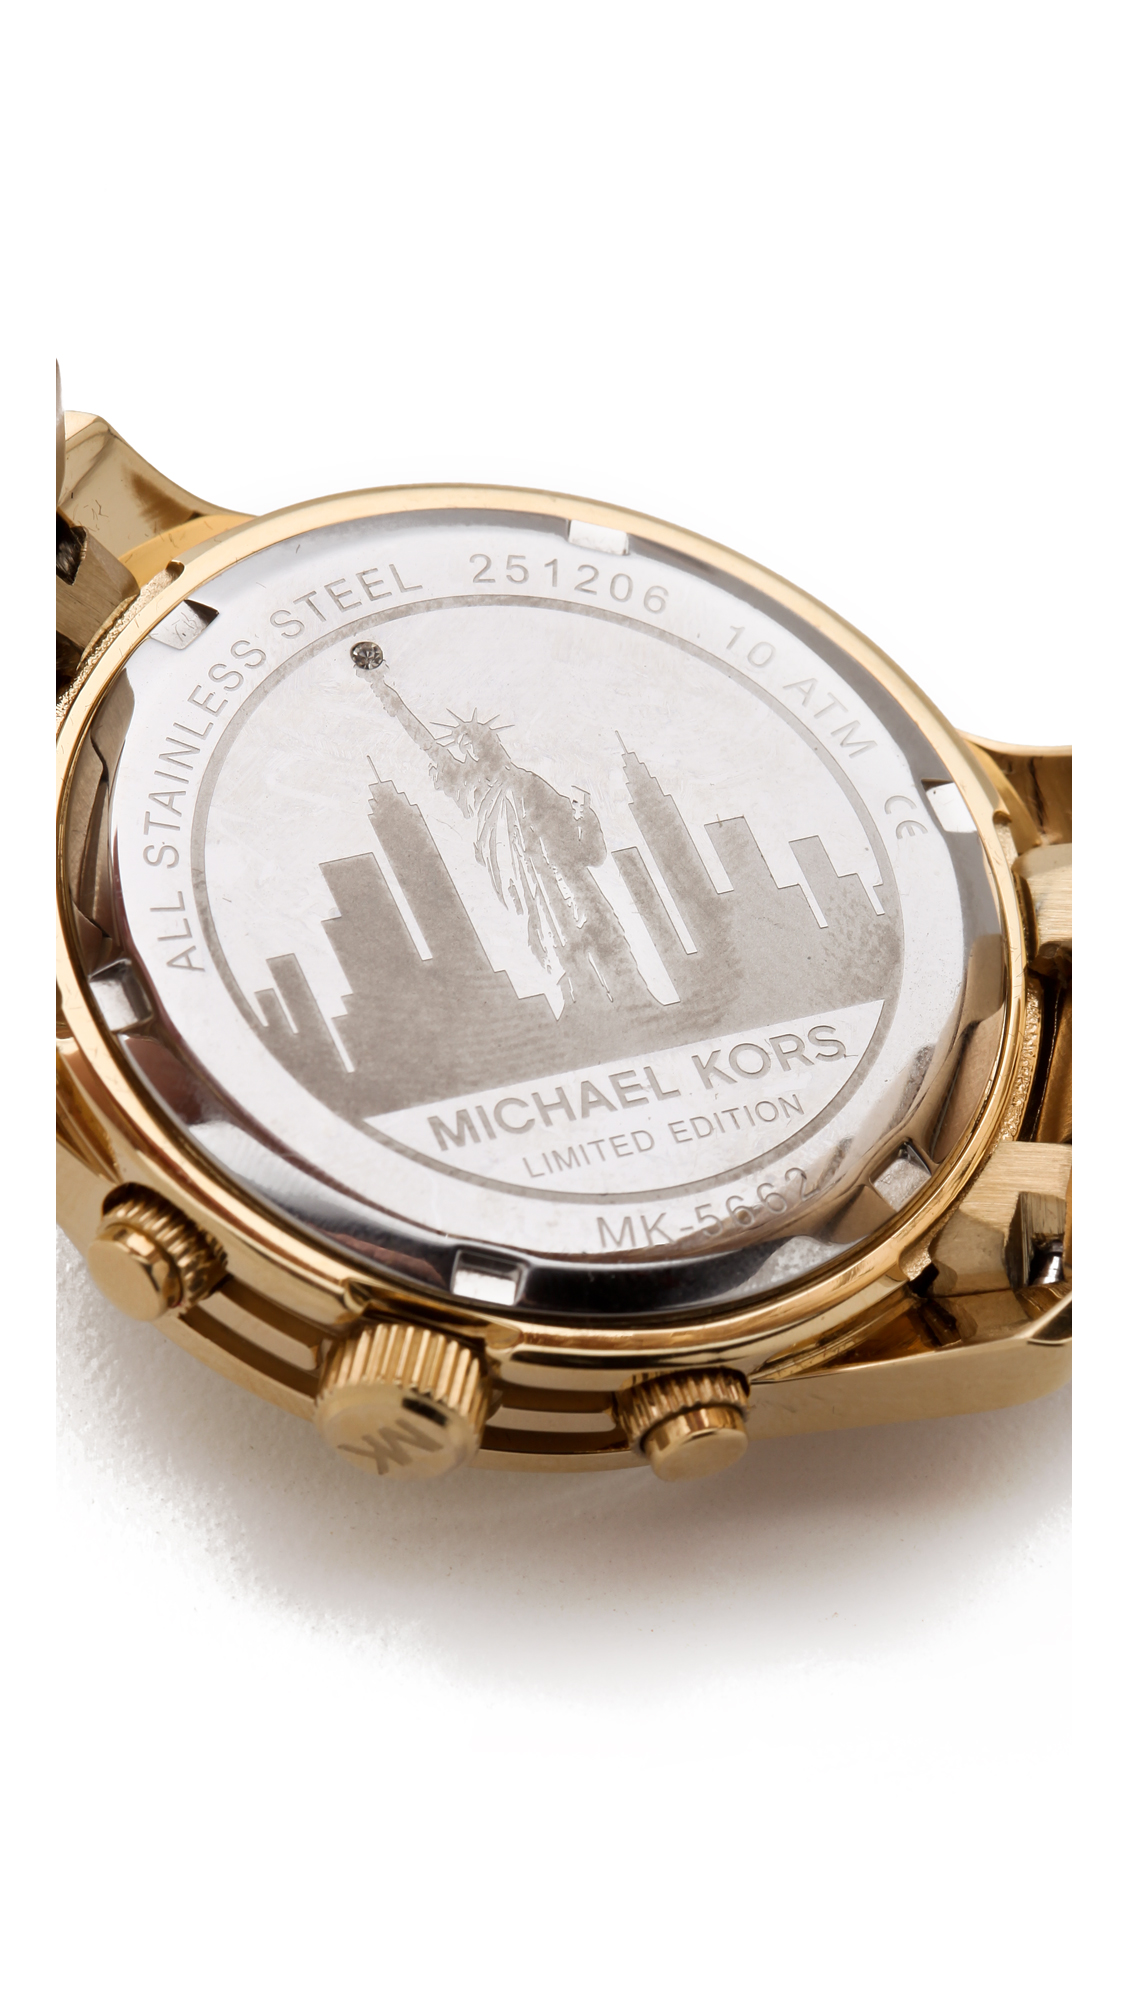 ce40f803e847 Michael Kors Limited Edition New York Watch